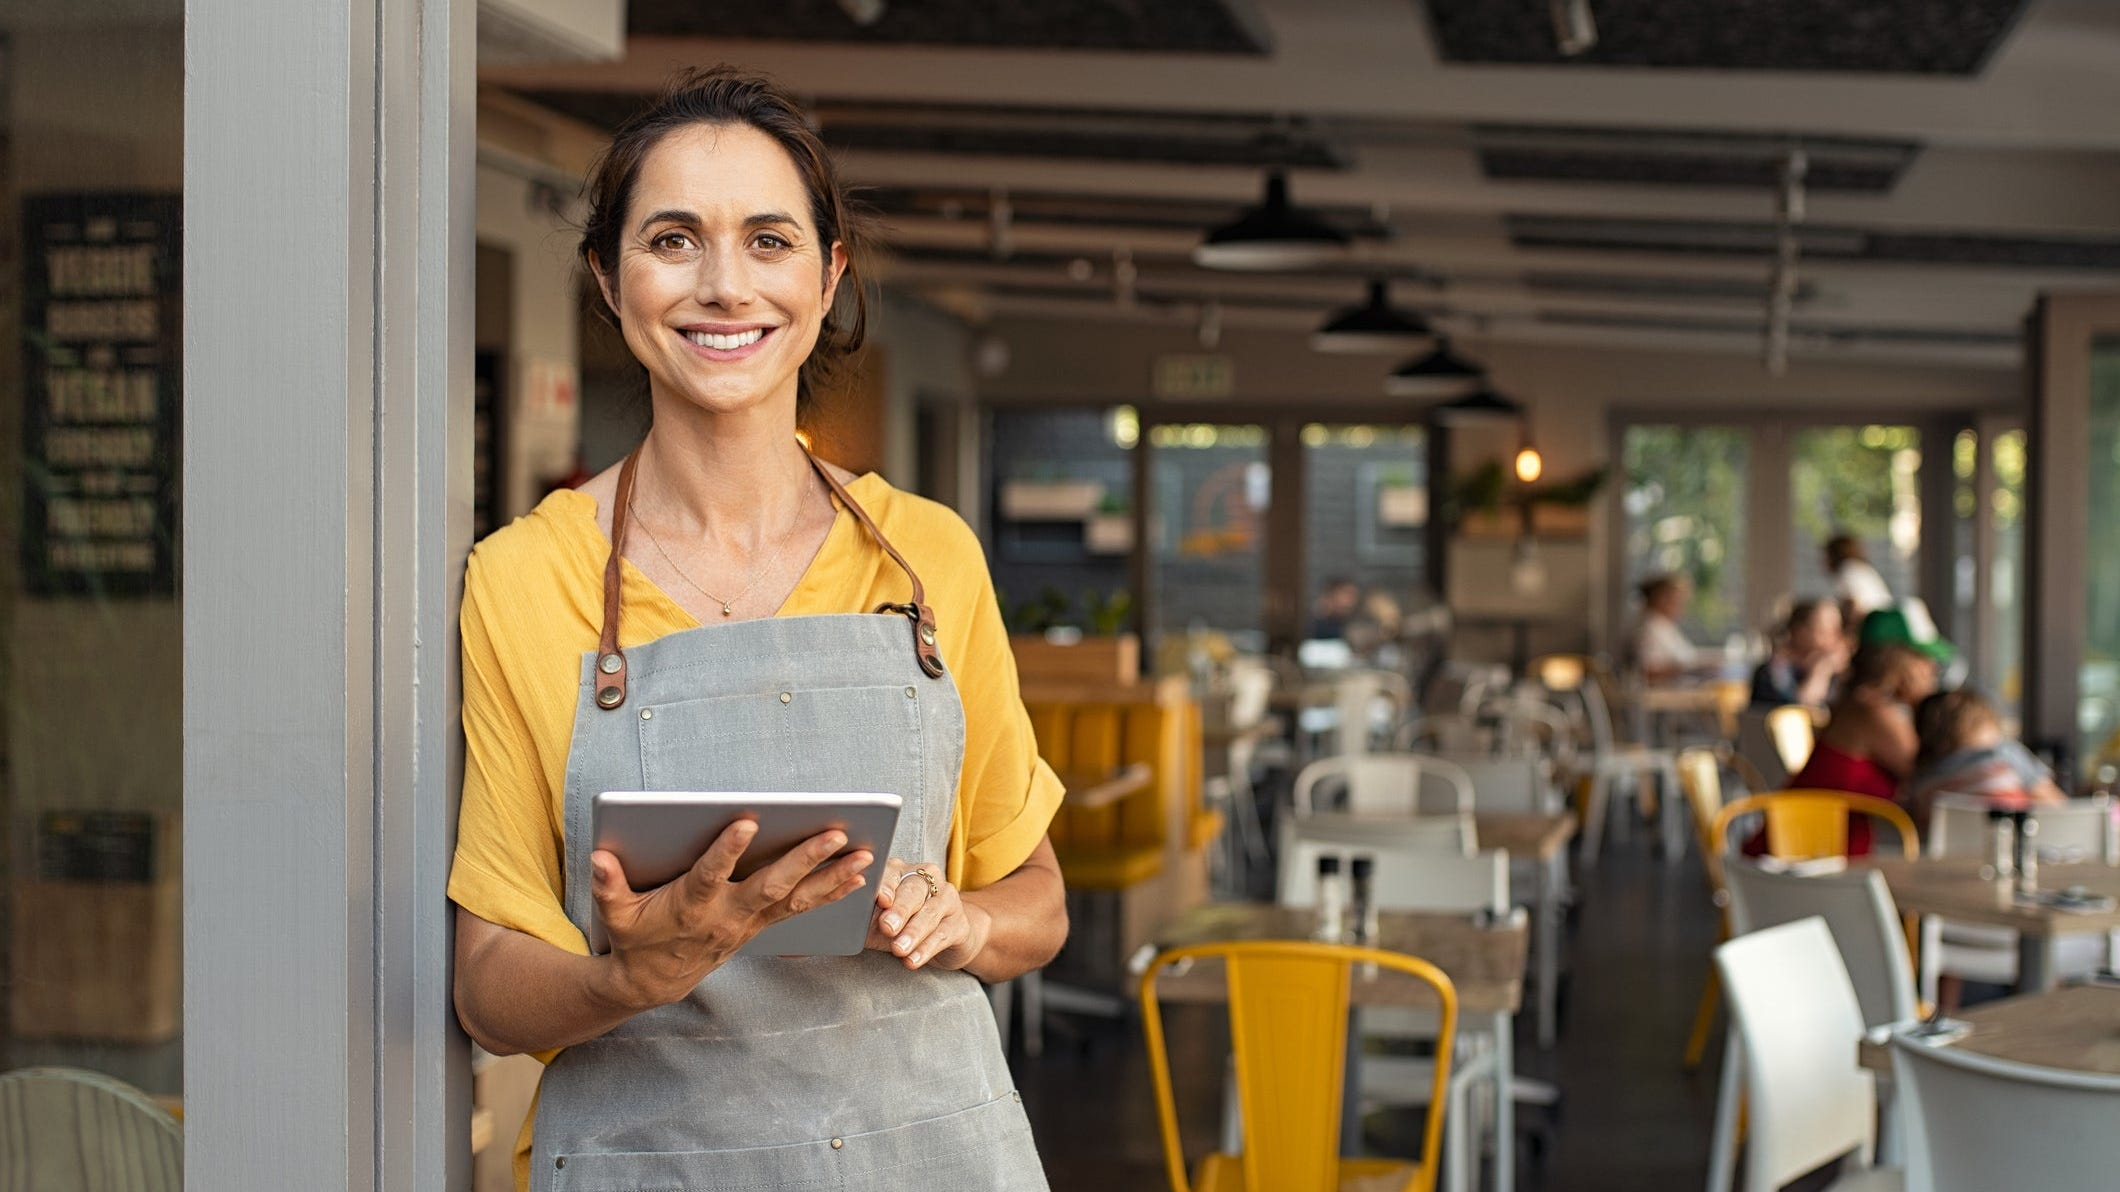 America's other essential workers: Small business owners